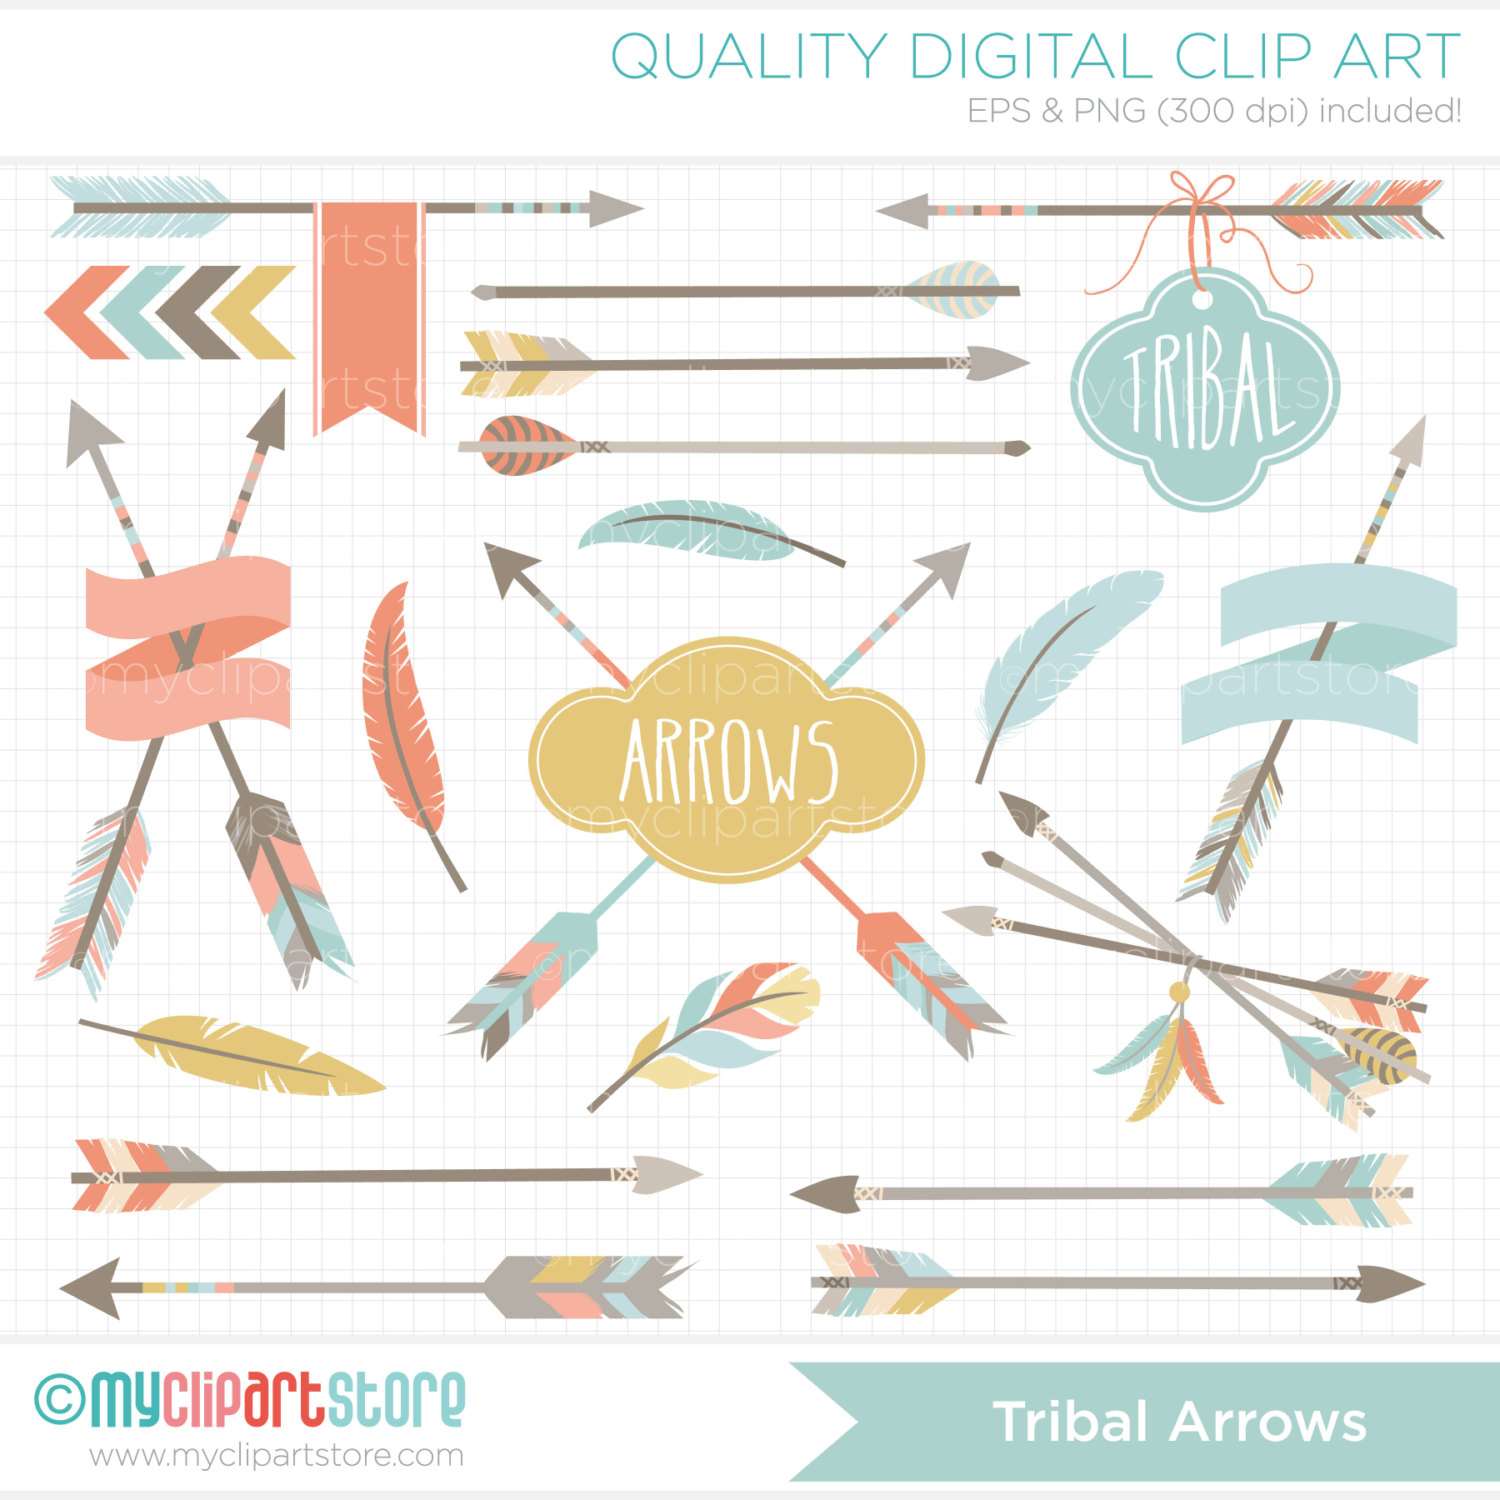 Hipster clipart tribal arrow #1